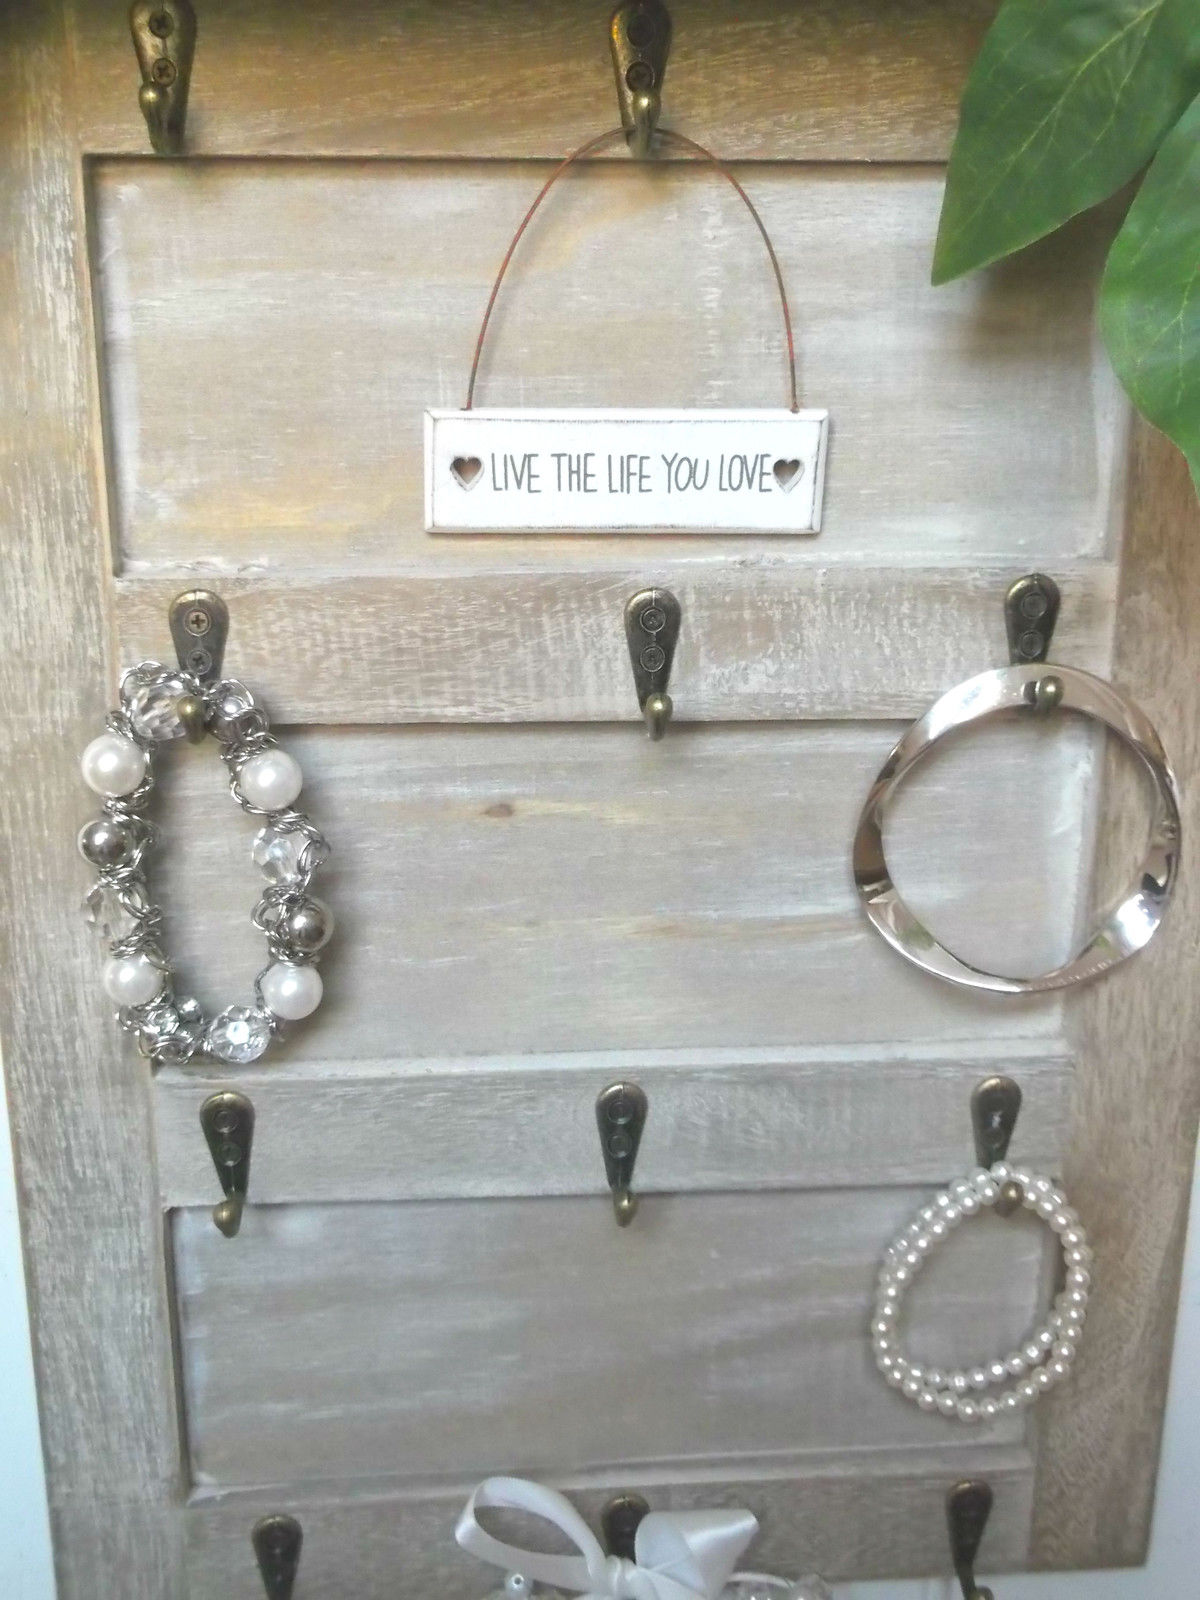 Wooden Key Holder With Shelf Shabby Chic Wall Mounted Key Hooks Holder Rack Jewellery